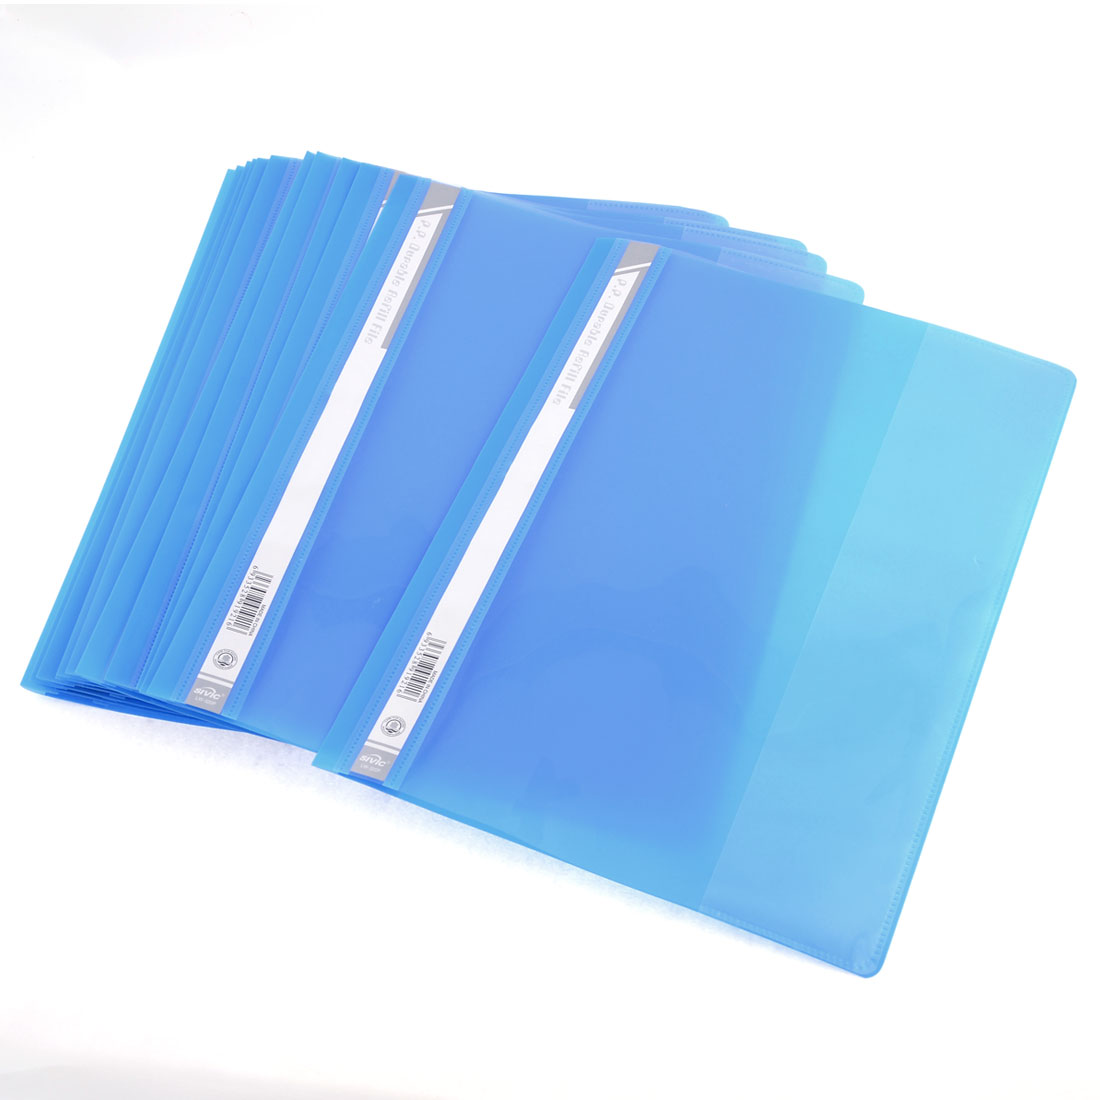 12 Pcs Size A4 Paper File Document Case Conference Folder Dodger Blue Clear